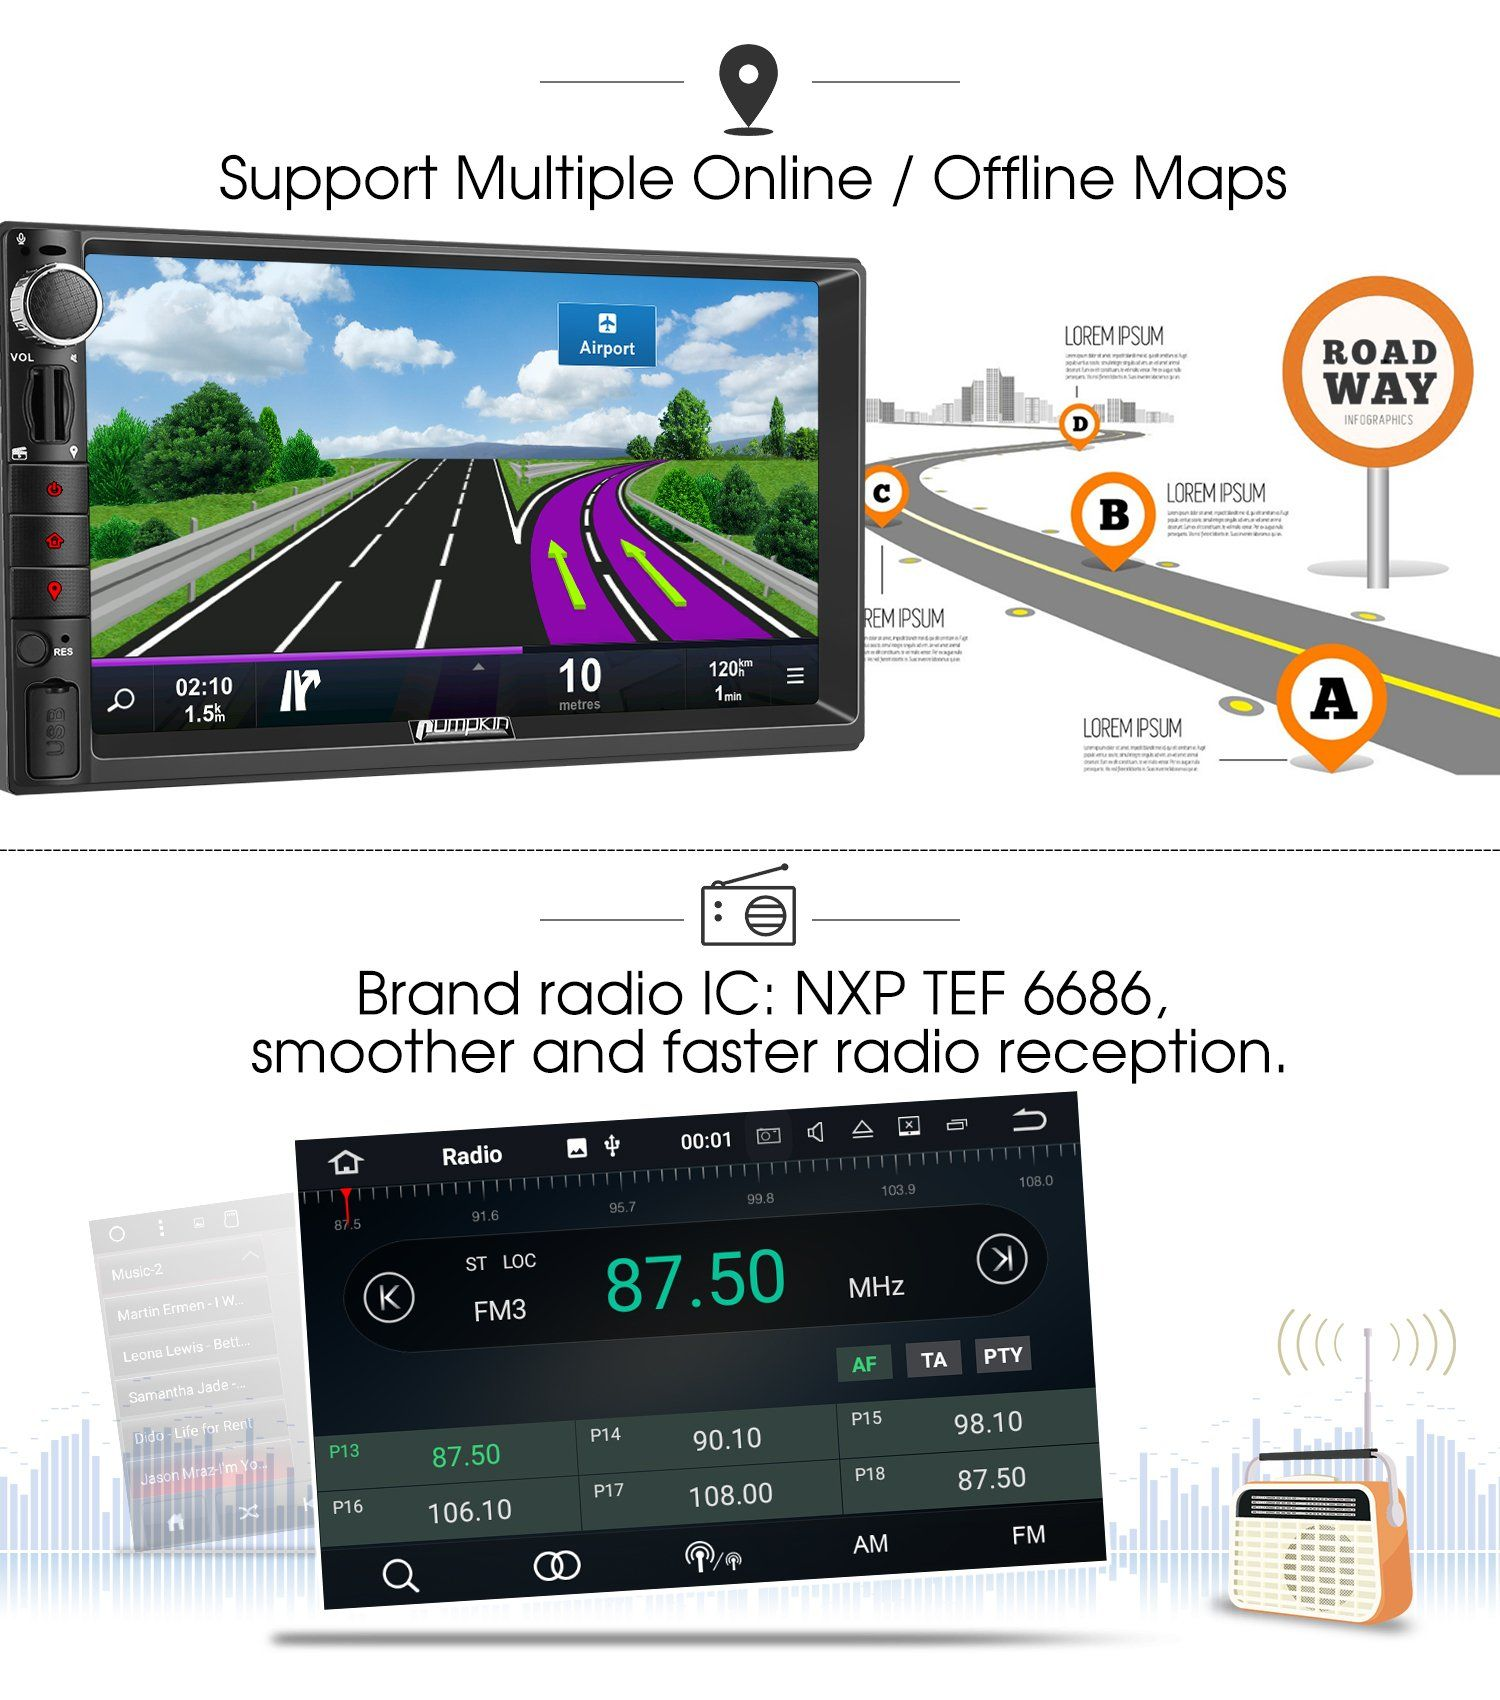 Pumpkin Android 7 1 Car Stereo Radio Double Din With Gps Wifi Support Fastboot Backup Camera Android Auto Aux 7 Inch Touc Backup Camera Car Stereo Android Auto